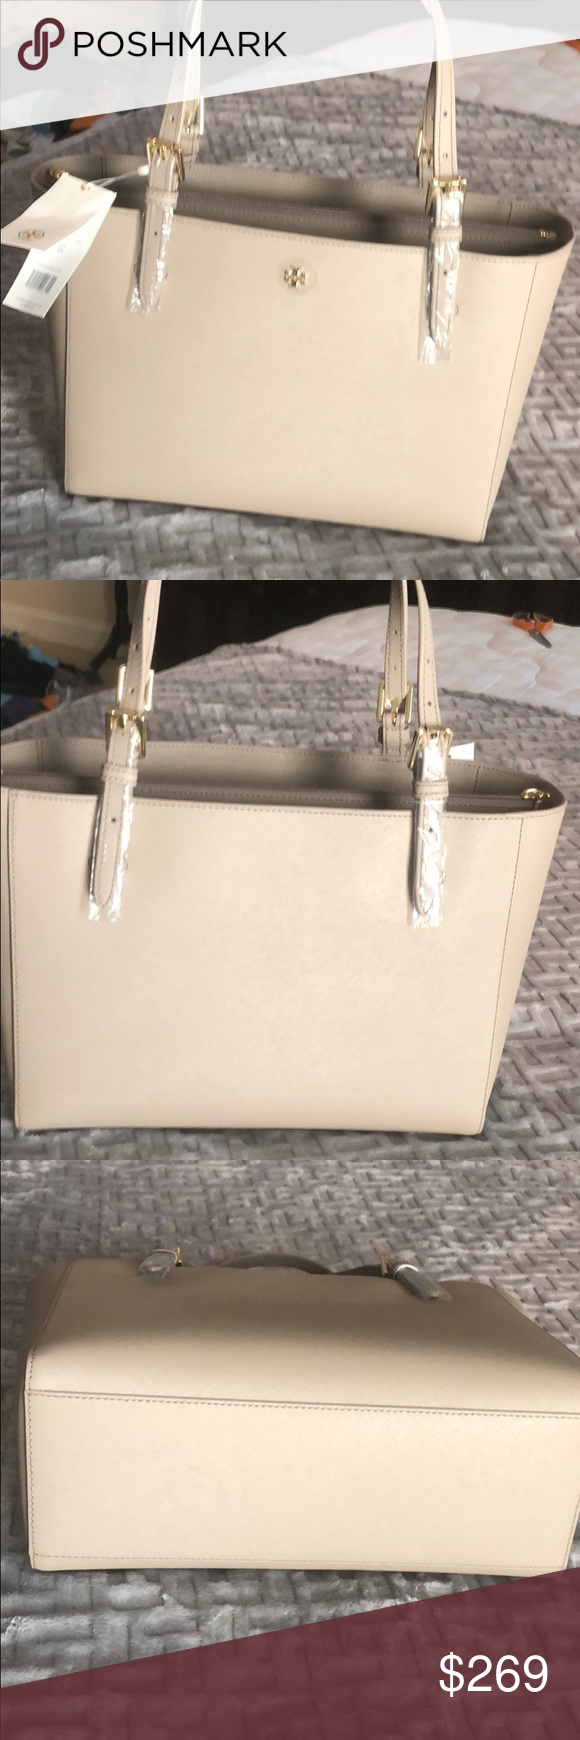 bde7b5e75eb Spotted while shopping on Poshmark: Tory Burch Emerson Small Buckle tote! # poshmark #fashion #shopping #style #Tory Burch #Handbags